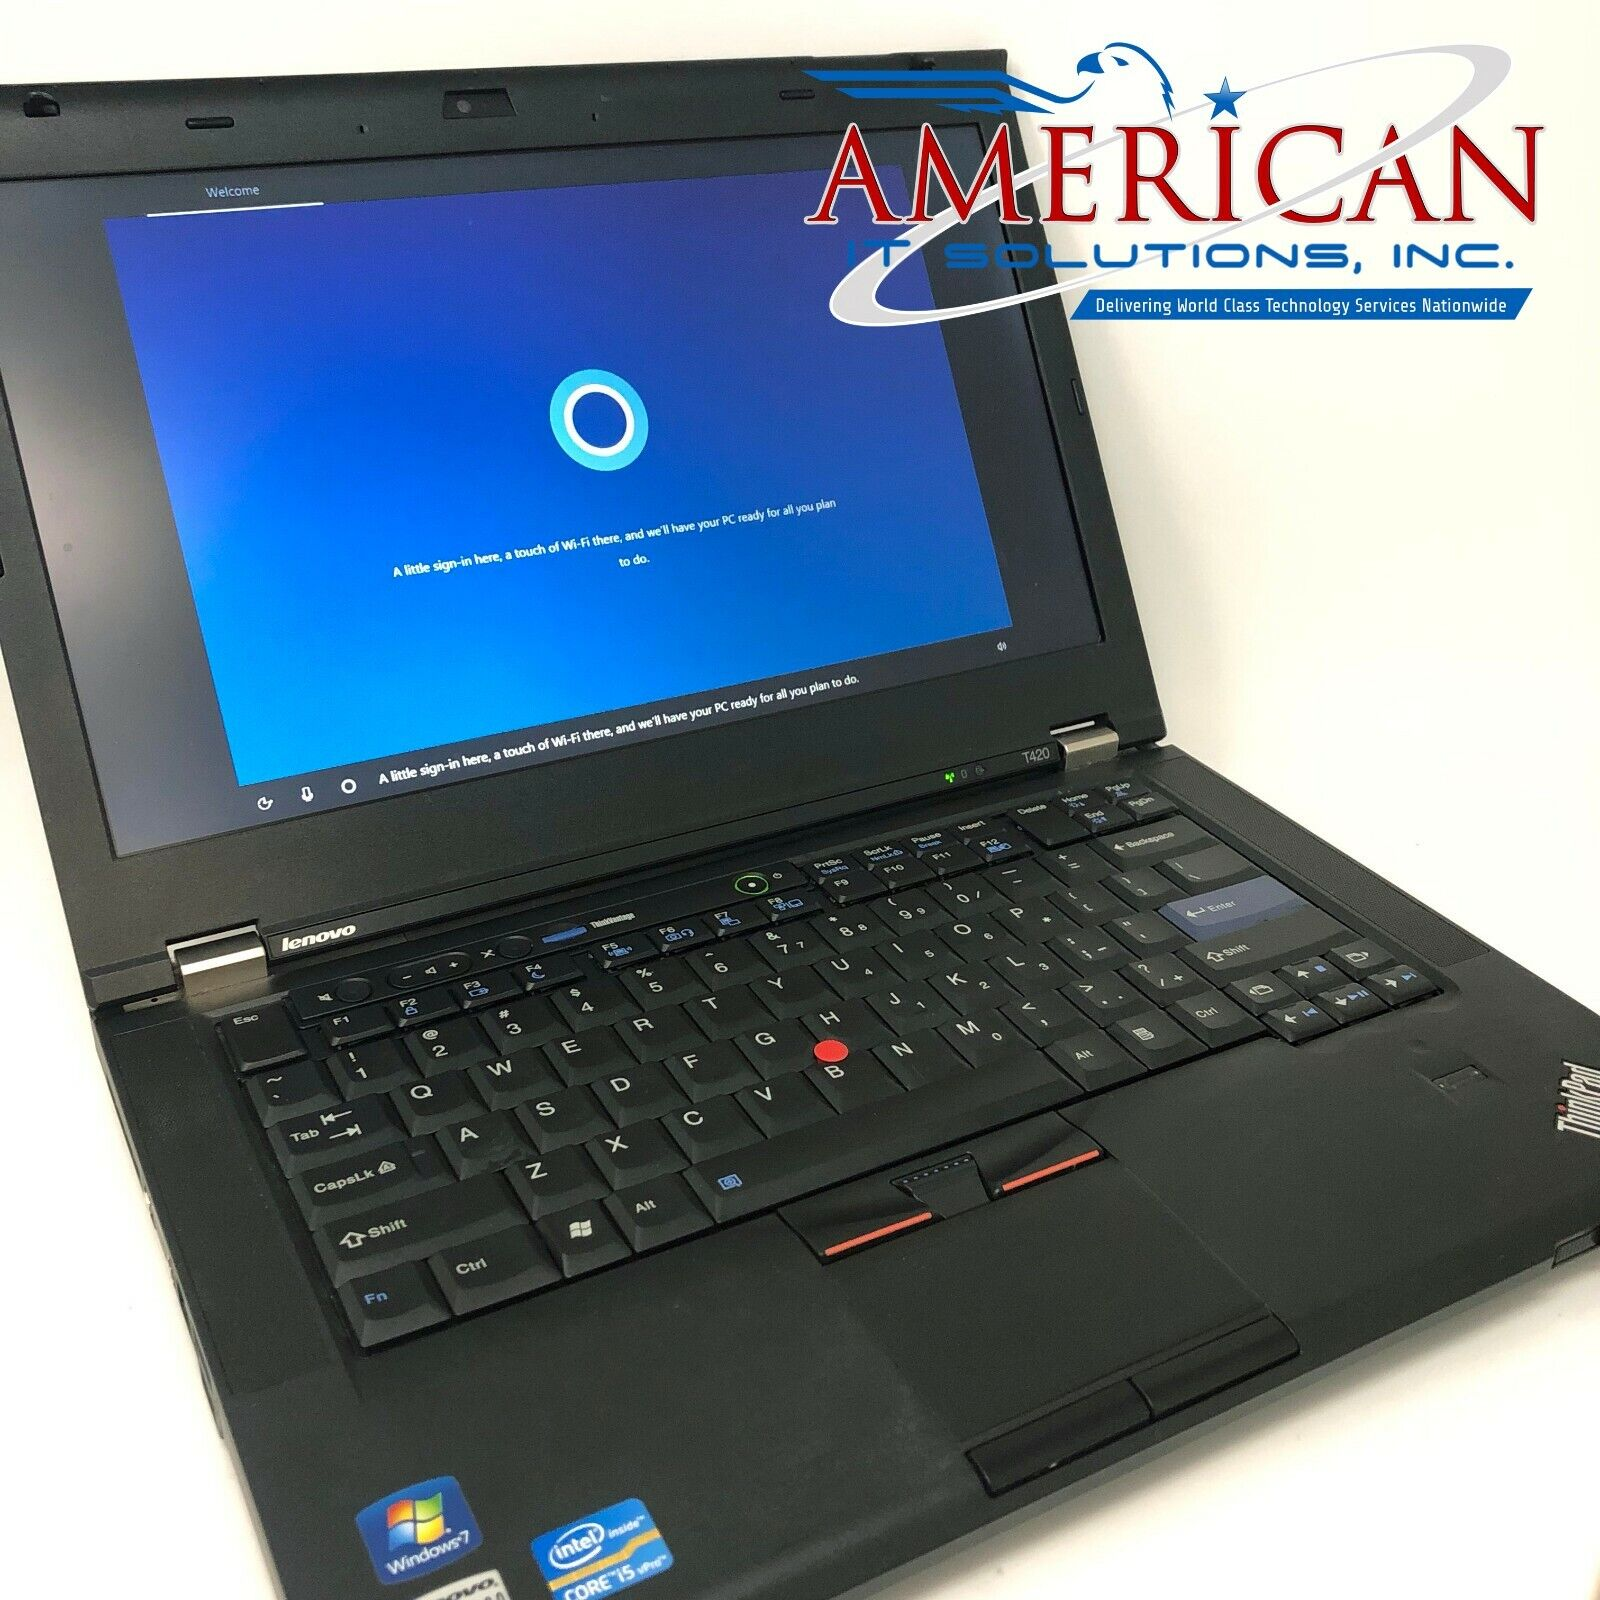 Laptop Windows - Lenovo T420 - Core i5 @ 2.5GHz - 4GB RAM - 128GB SSD - Webcam - Windows 10 Pro